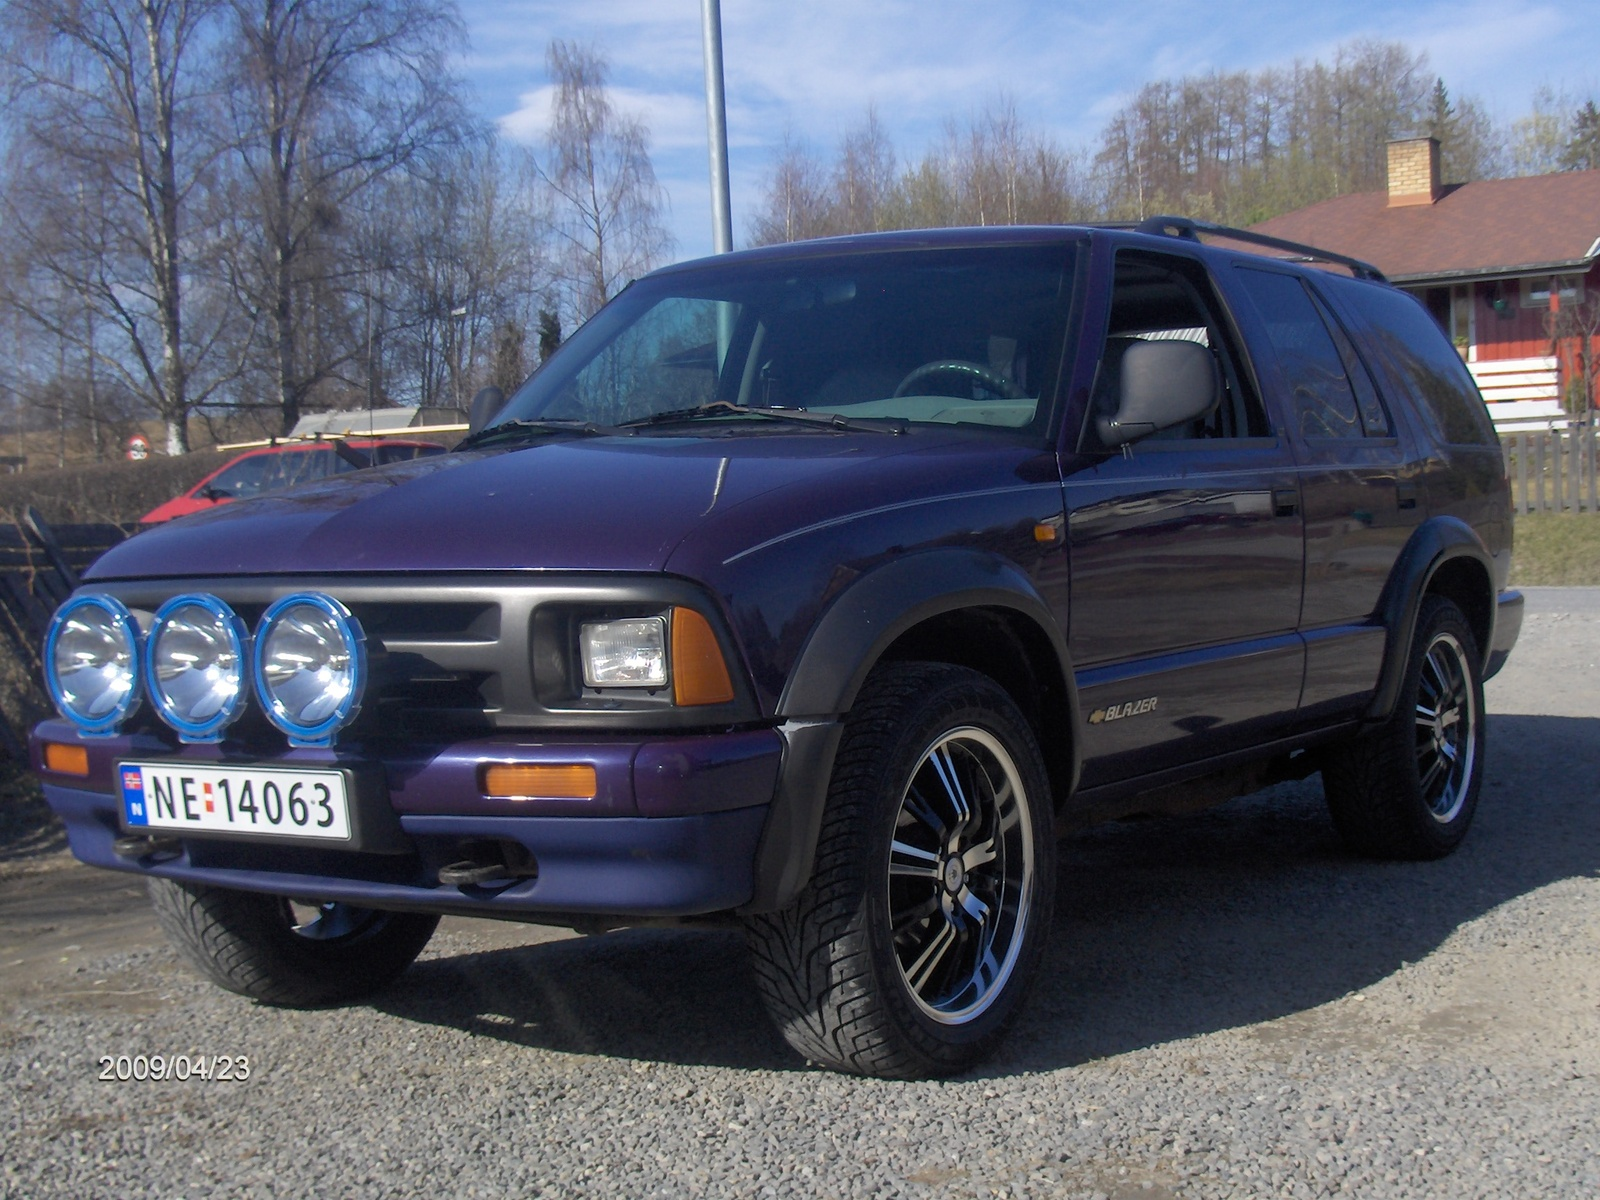 1997 Chevy Blazer Specs Images - Reverse Search